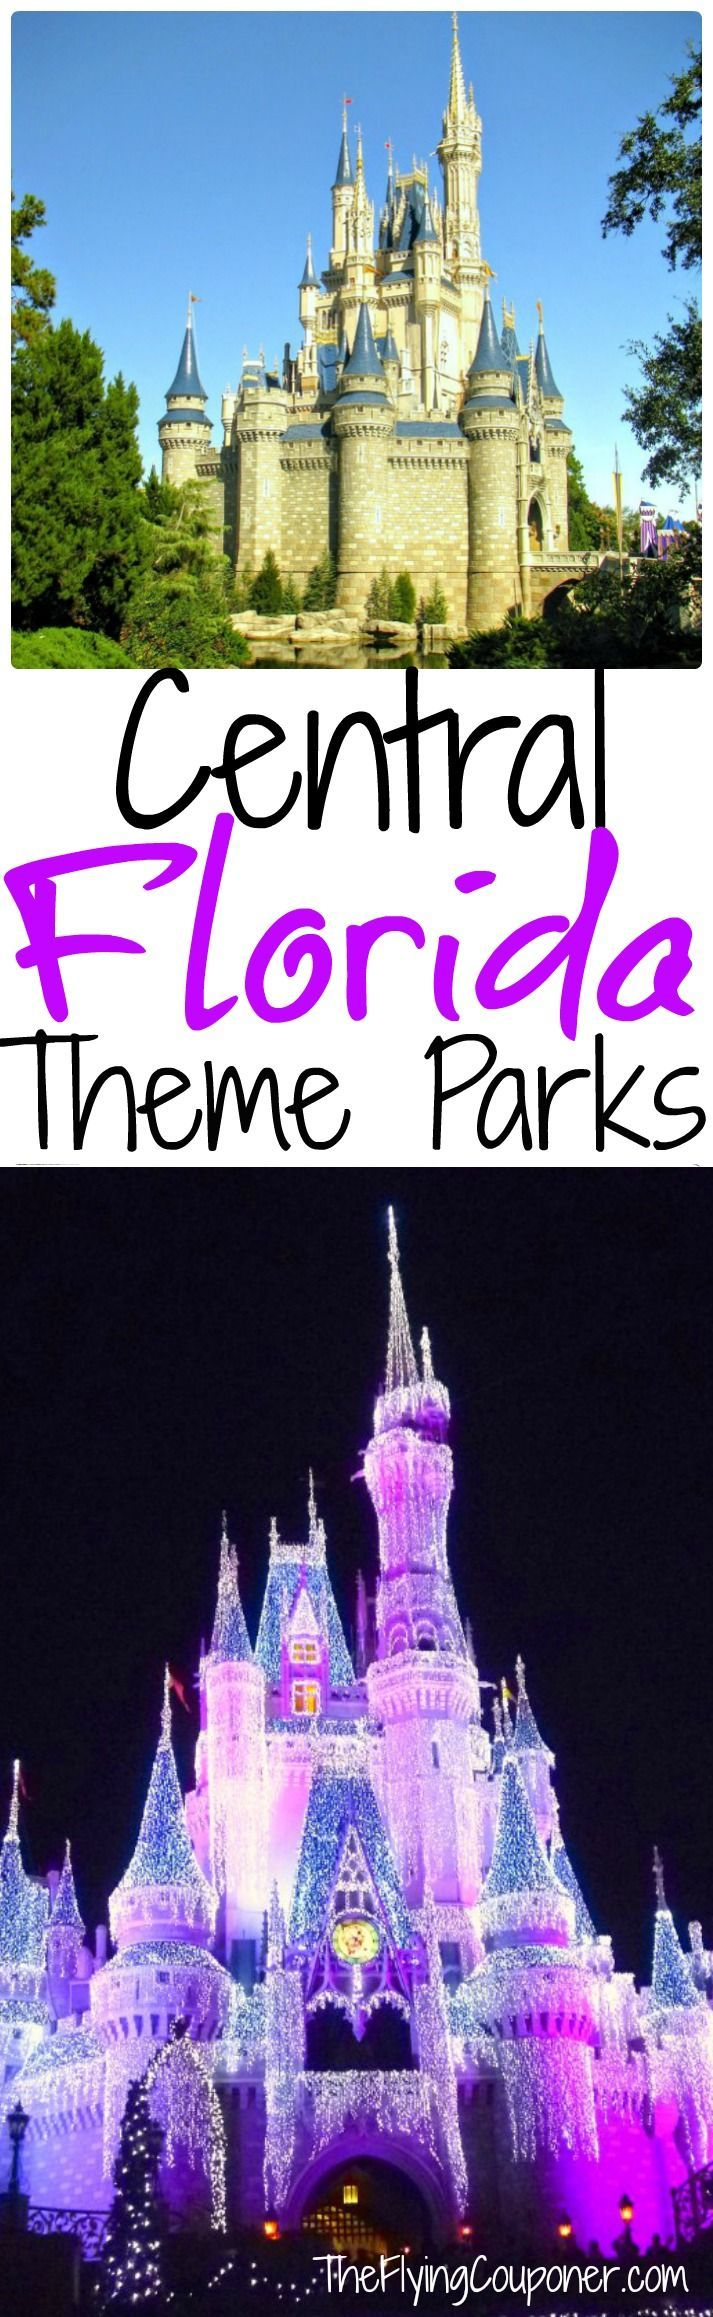 Central Florida Theme Parks. Things to do in Florida during your vacations. Legoland Orlando, Universal Studio Orlando, Bush Gardens Tampa, Disney World, I-Drive 360, Seaworld Florida. The Flying Couponer | Family. Travel. Saving Money.